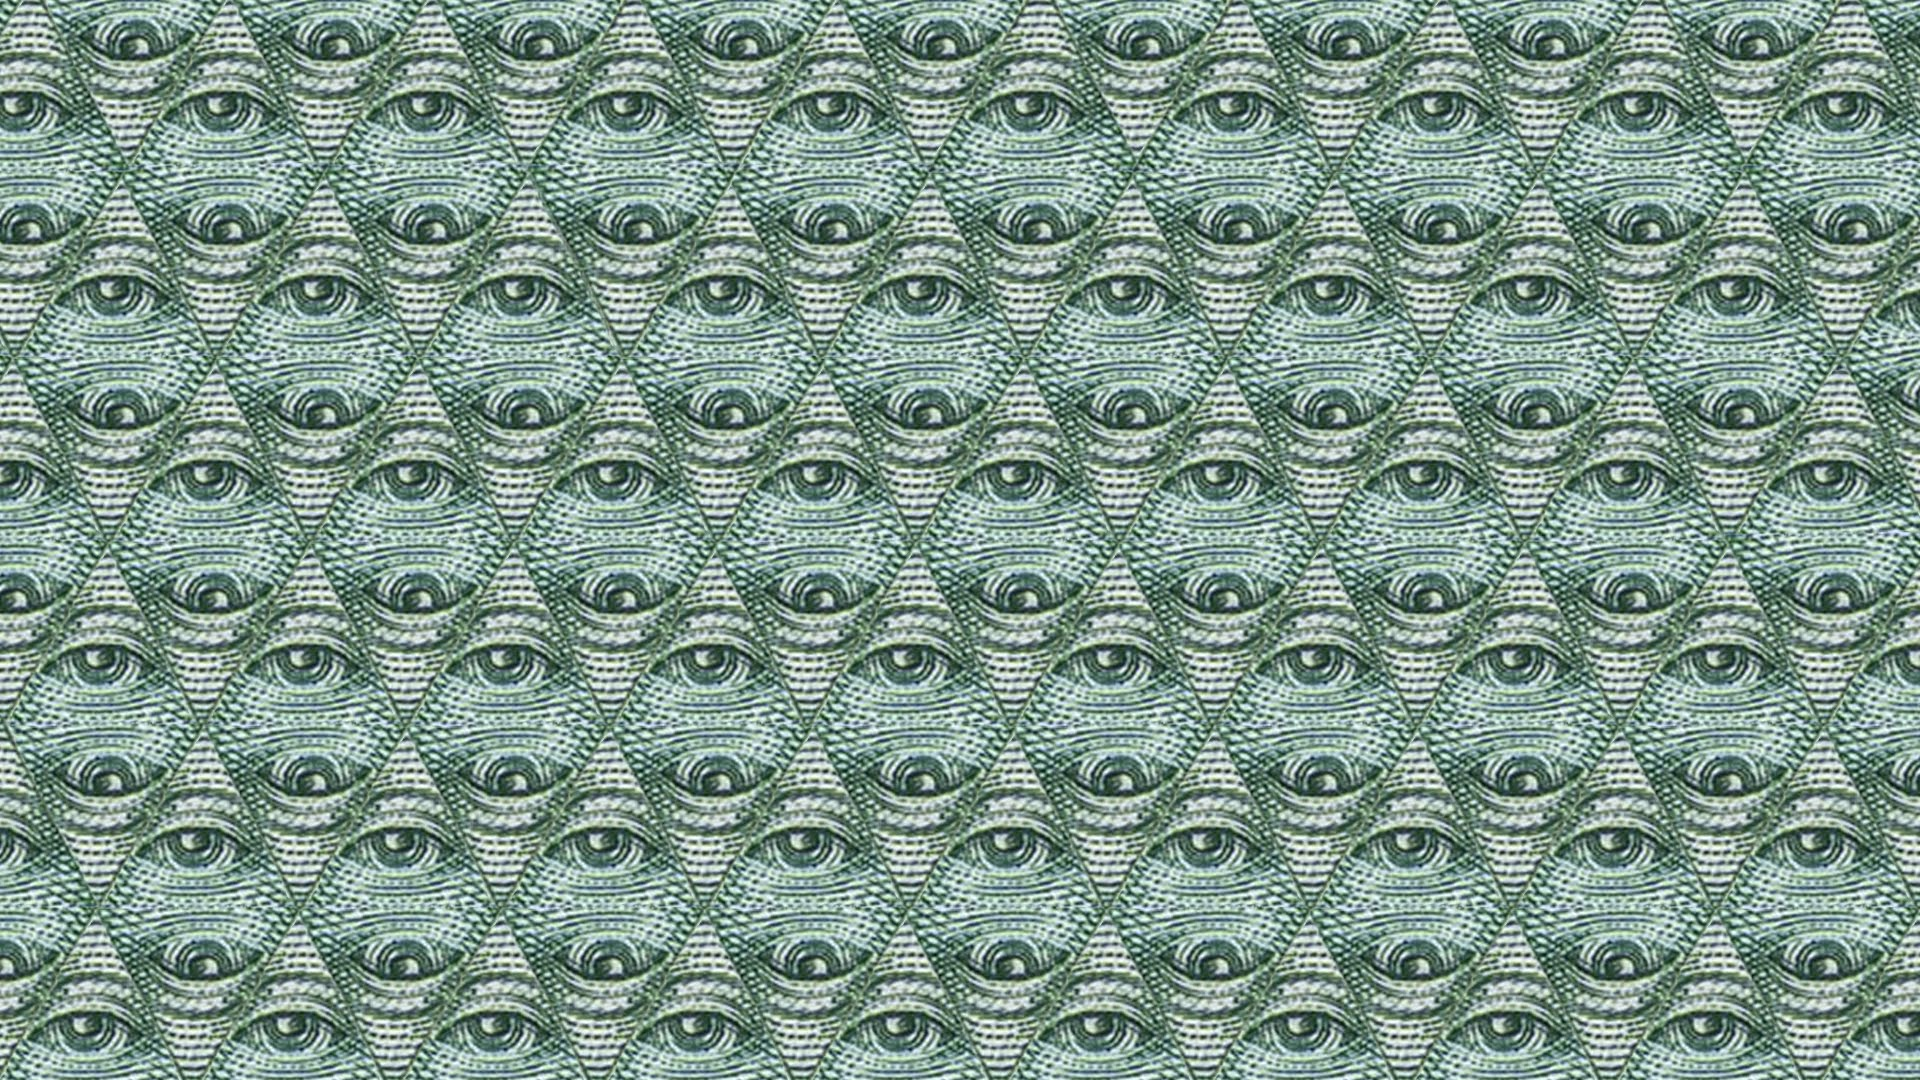 High Resolution Wallpaper | Illuminati 1920x1080 px